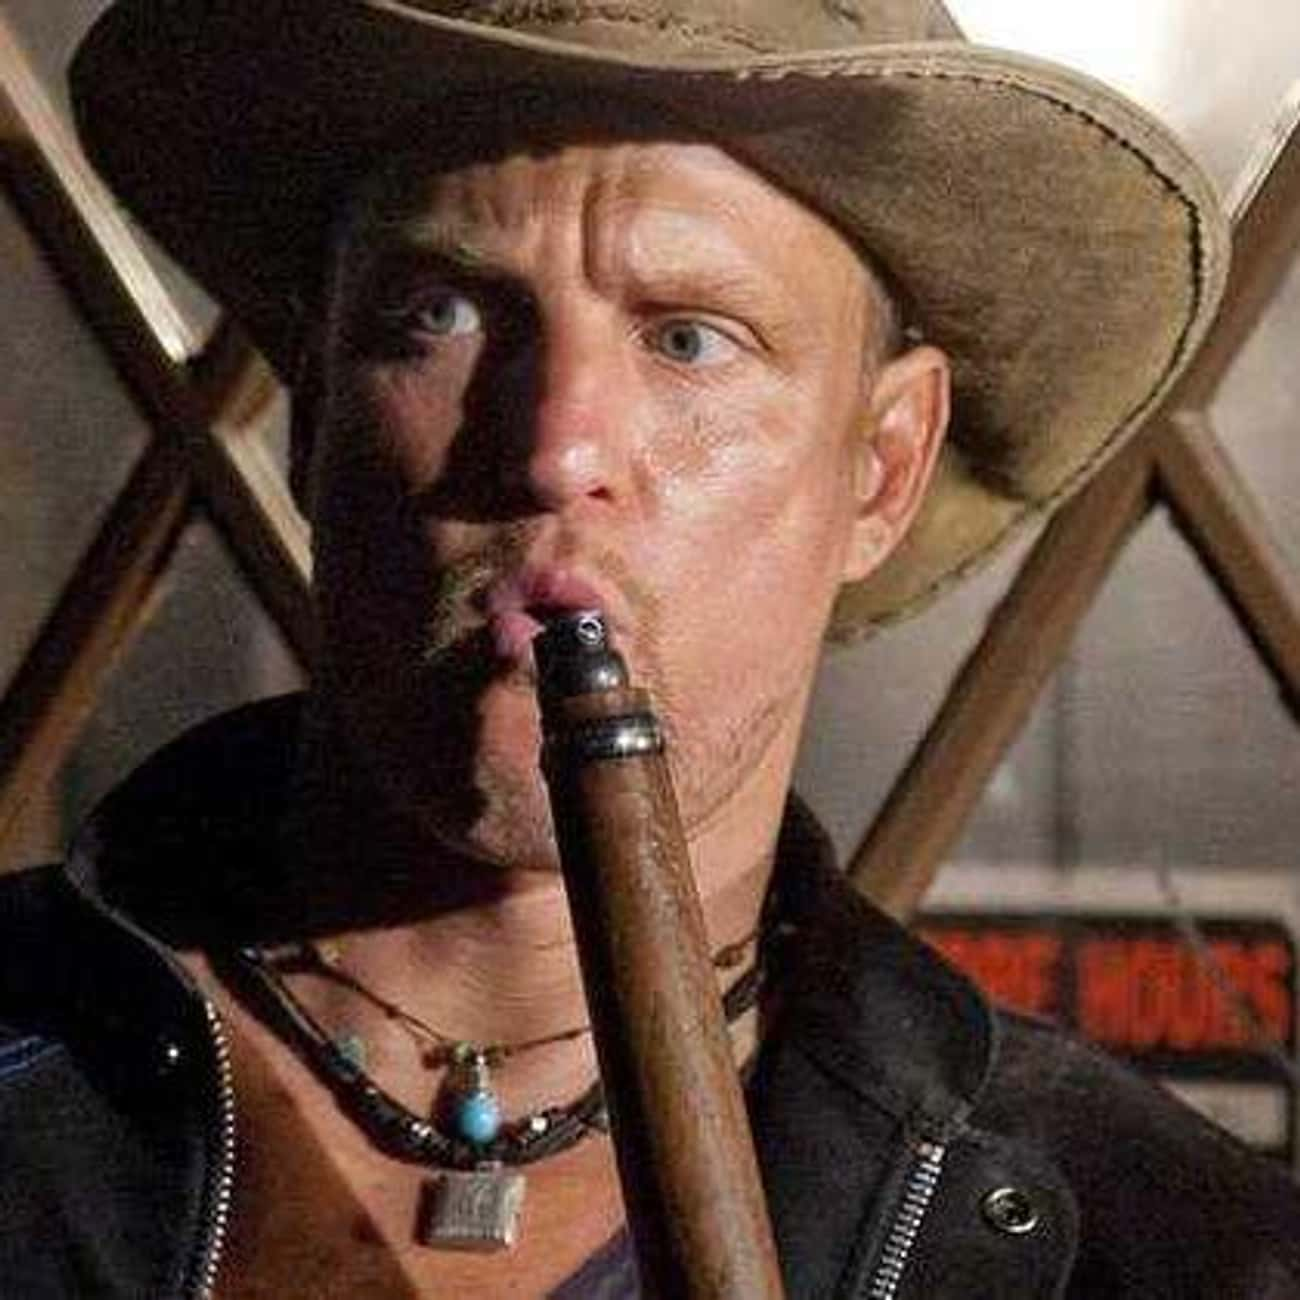 Twinkies In Mexico is listed (or ranked) 3 on the list The Most Hilarious 'Zombieland' Quotes